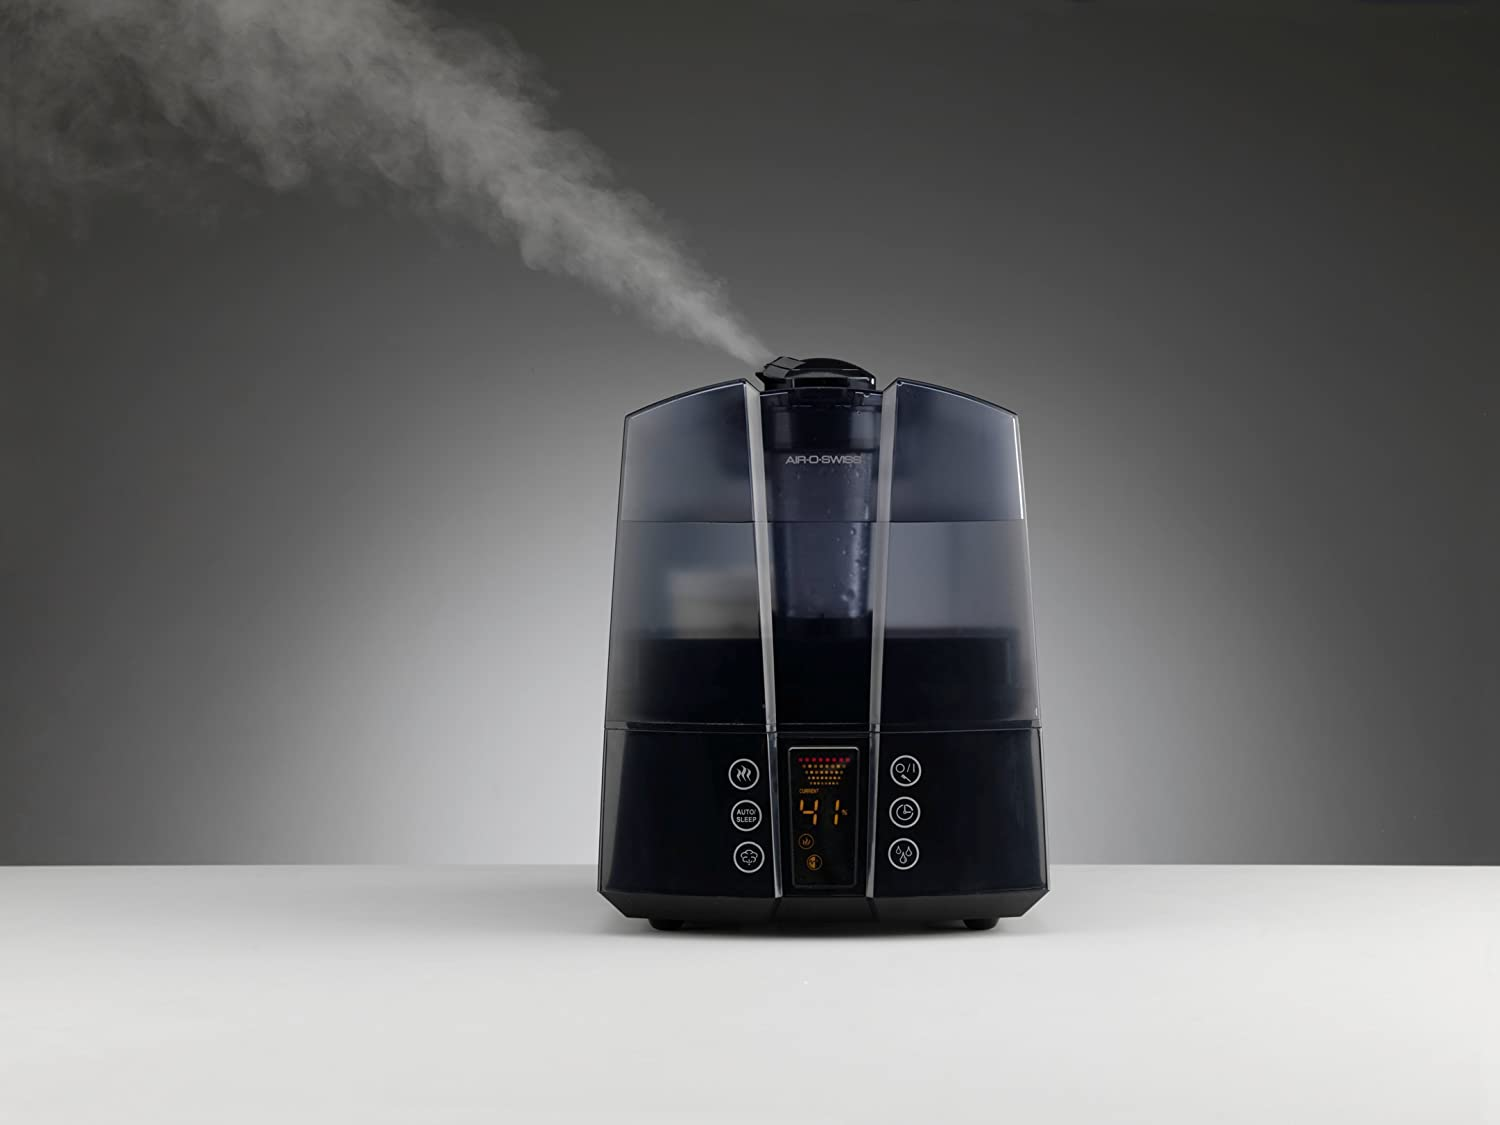 Top 10 Best Single Room Humidifiers List and Reviews 2016 2017 on  #484F5B